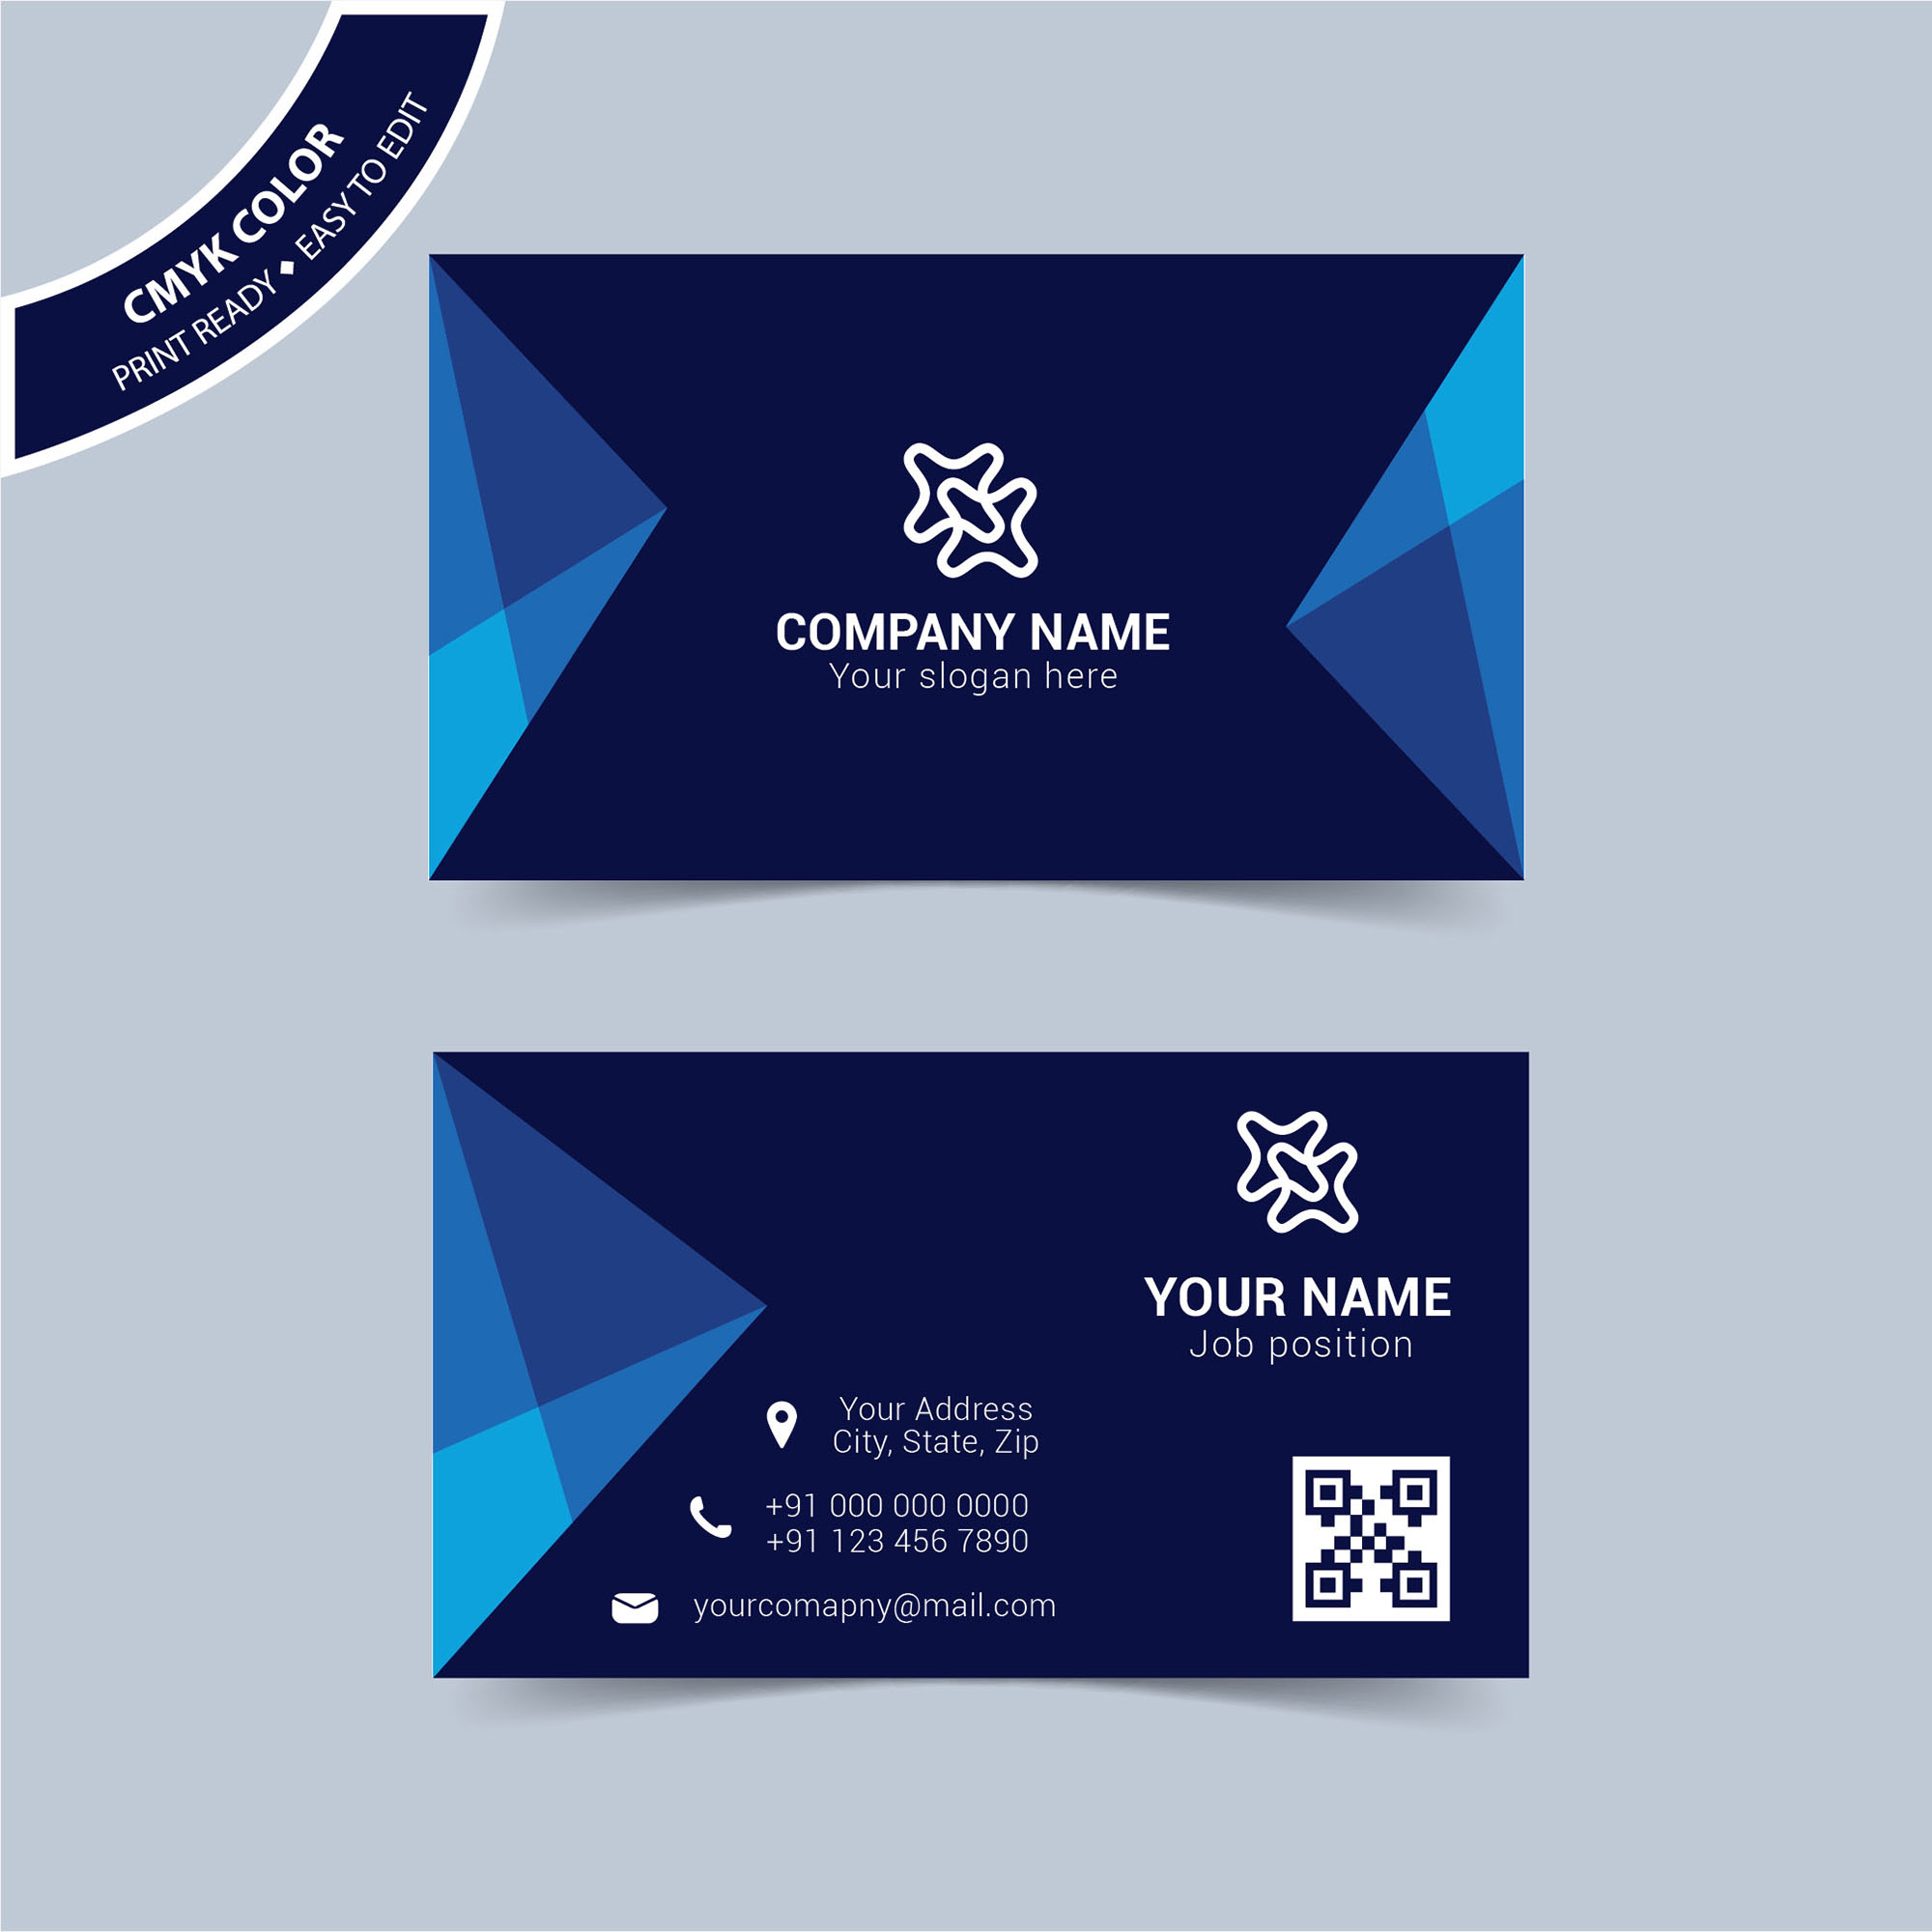 Modern Blue Business Card Template Free Download - Wisxi.com